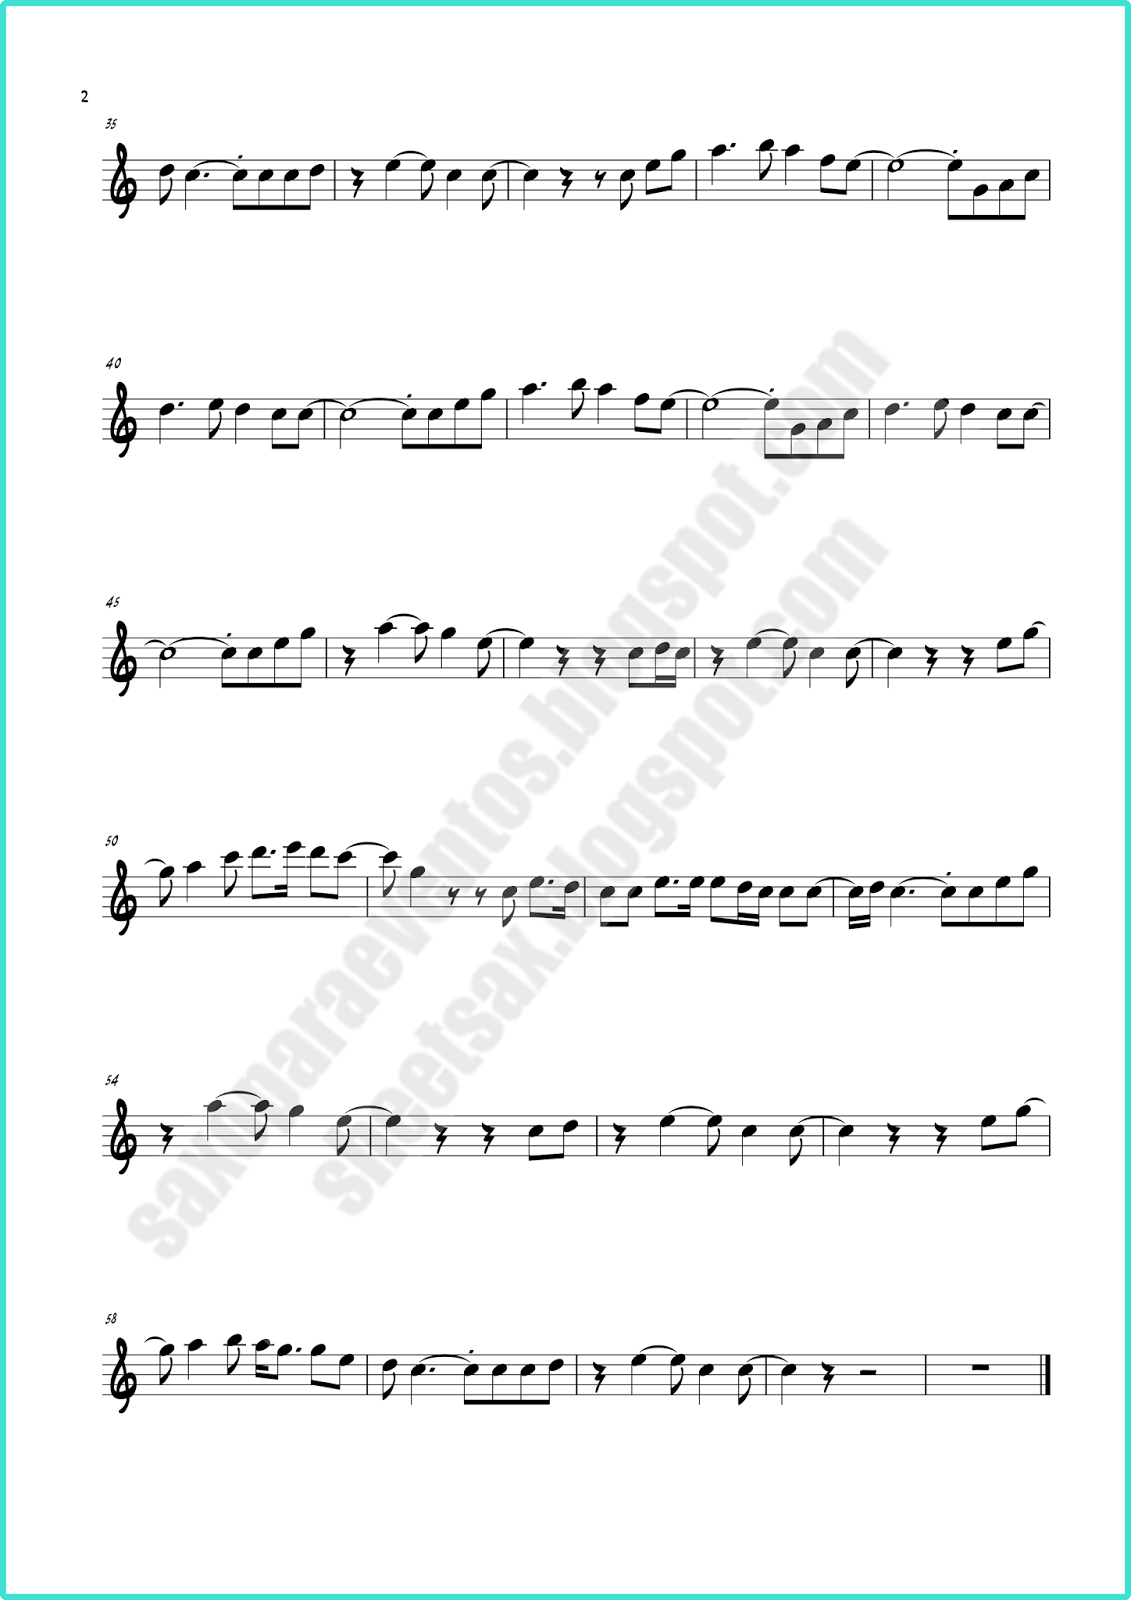 Stay With Me by Sam Smith (Free sheet music and playalong